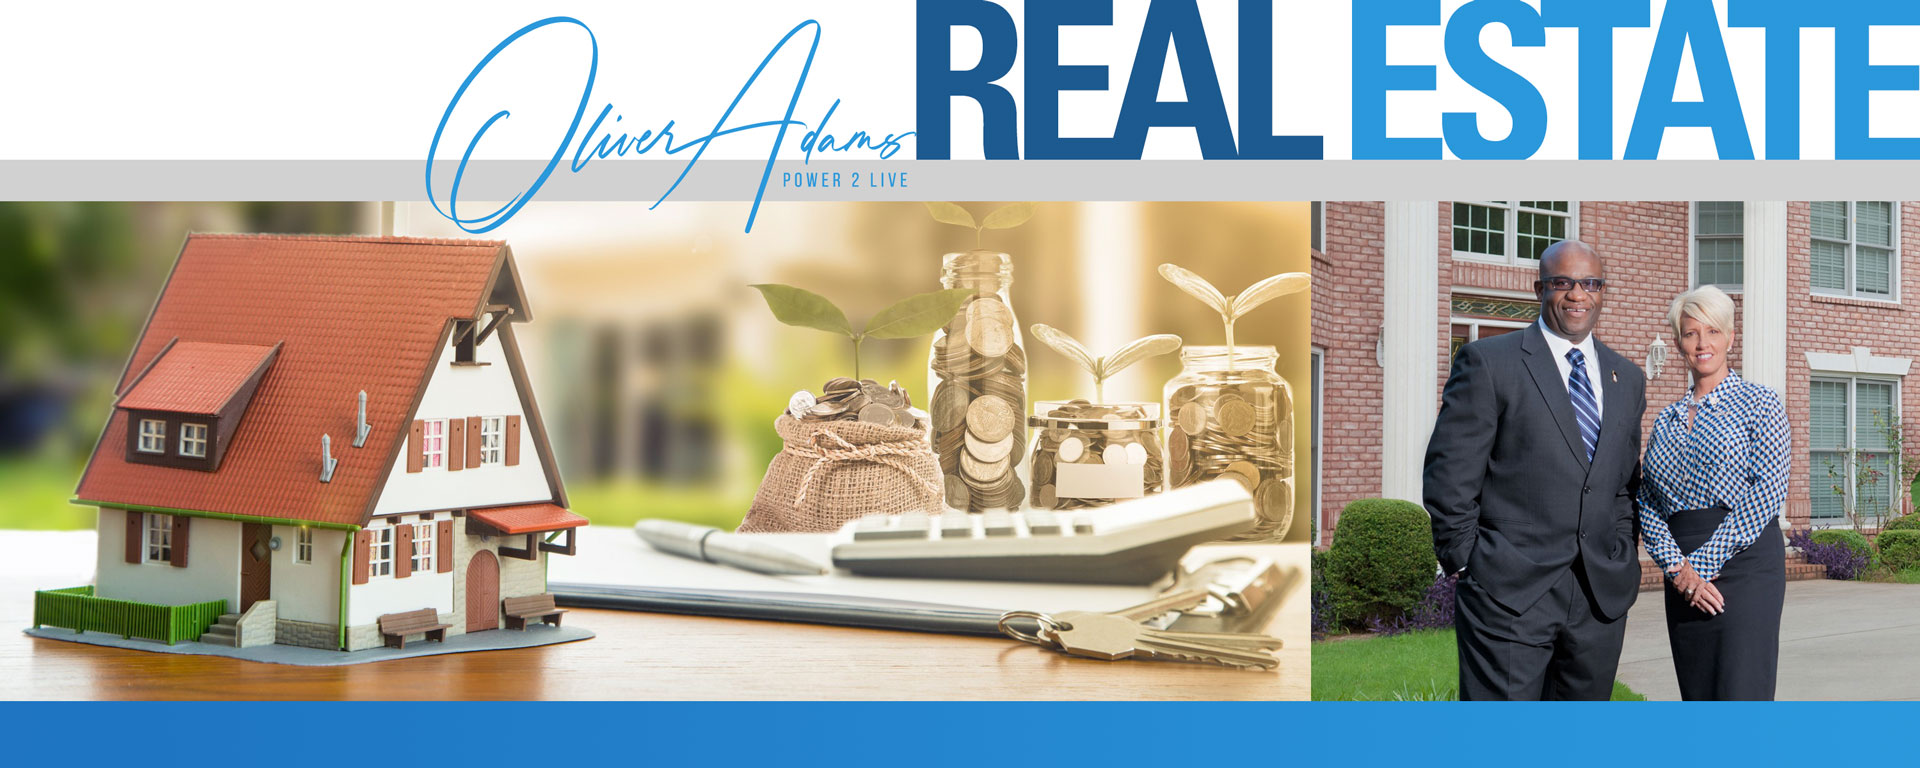 OLIVER-ADAMS-REAL-ESTATE